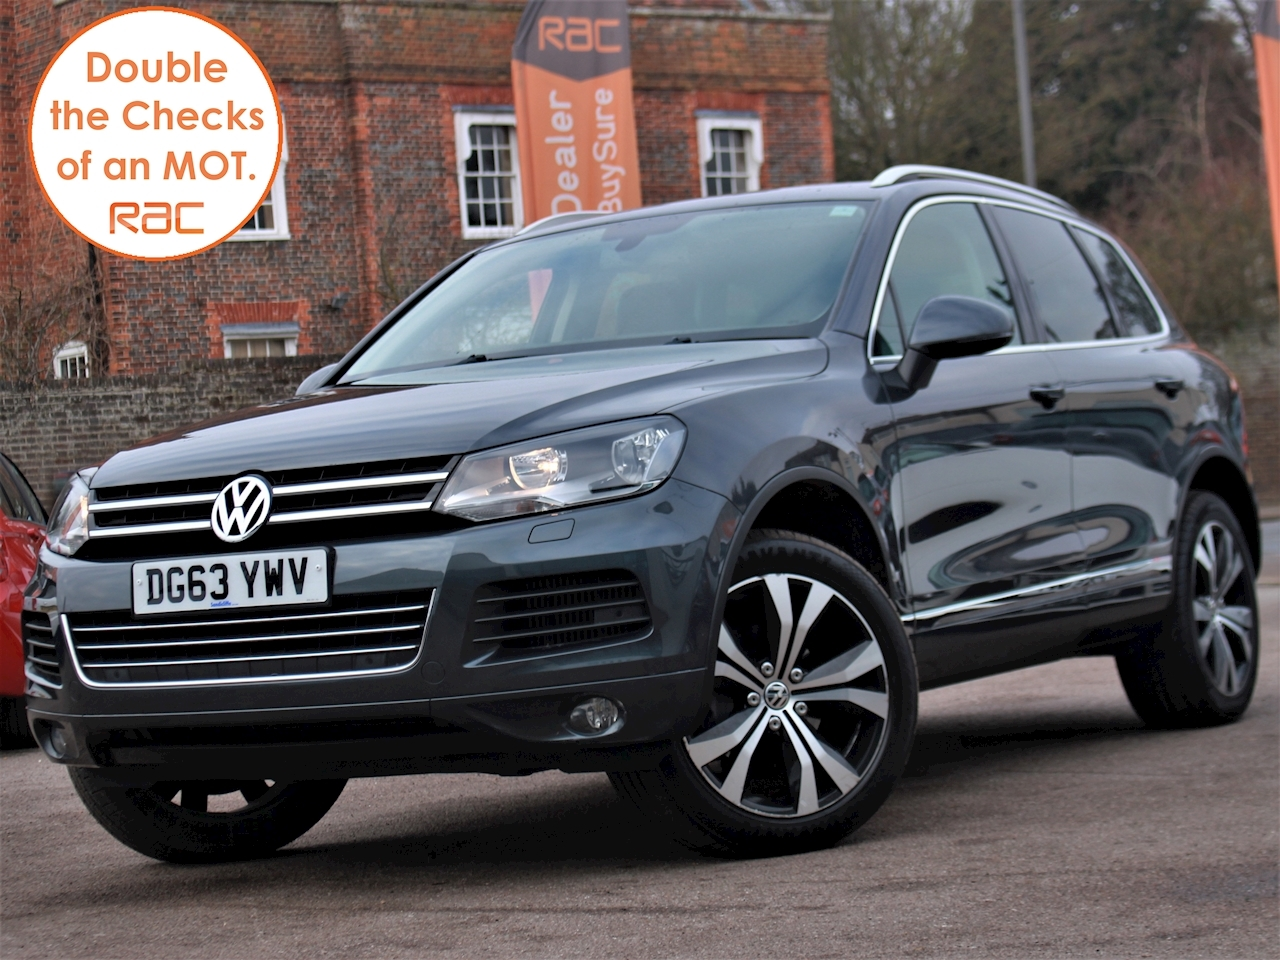 Volkswagen Touareg V6 Se Tdi Bluemotion Technology - Large 3